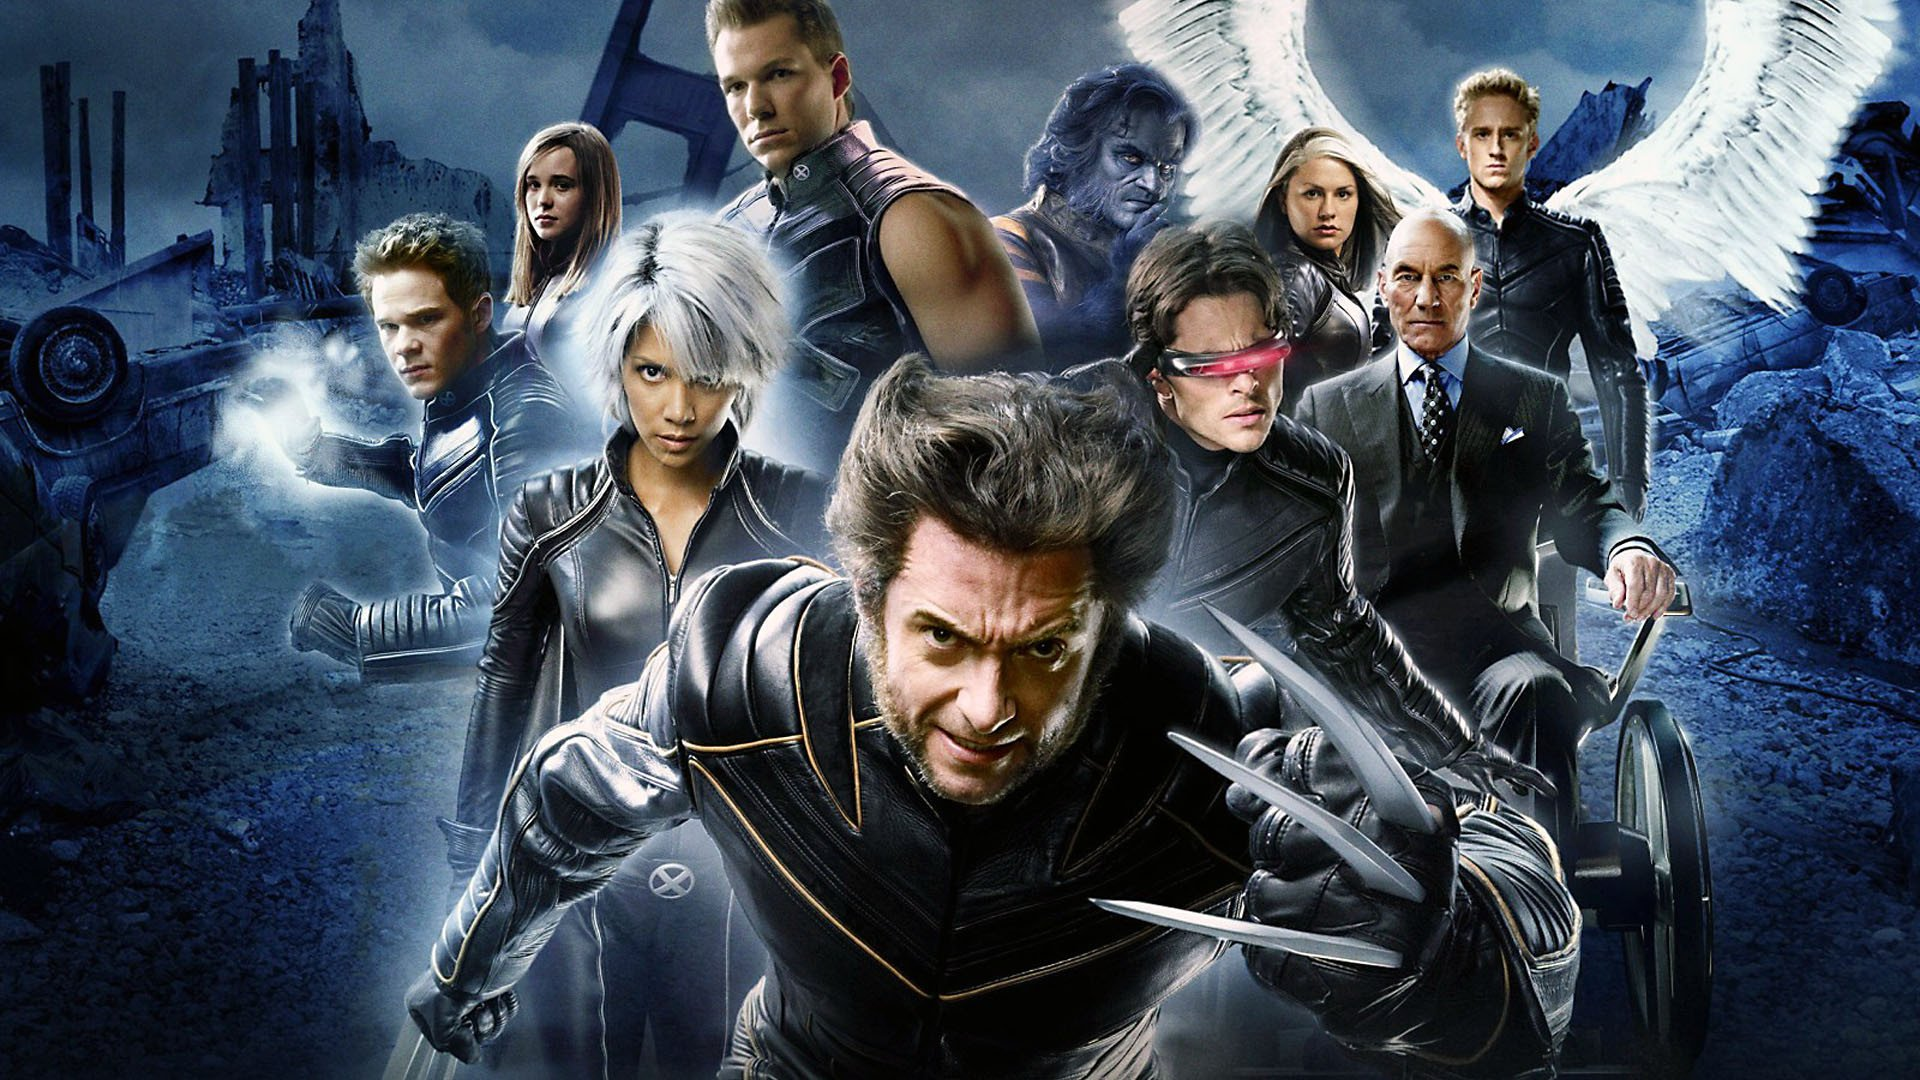 X Men The Last Stand Hd Wallpaper Background Image 1920x1080